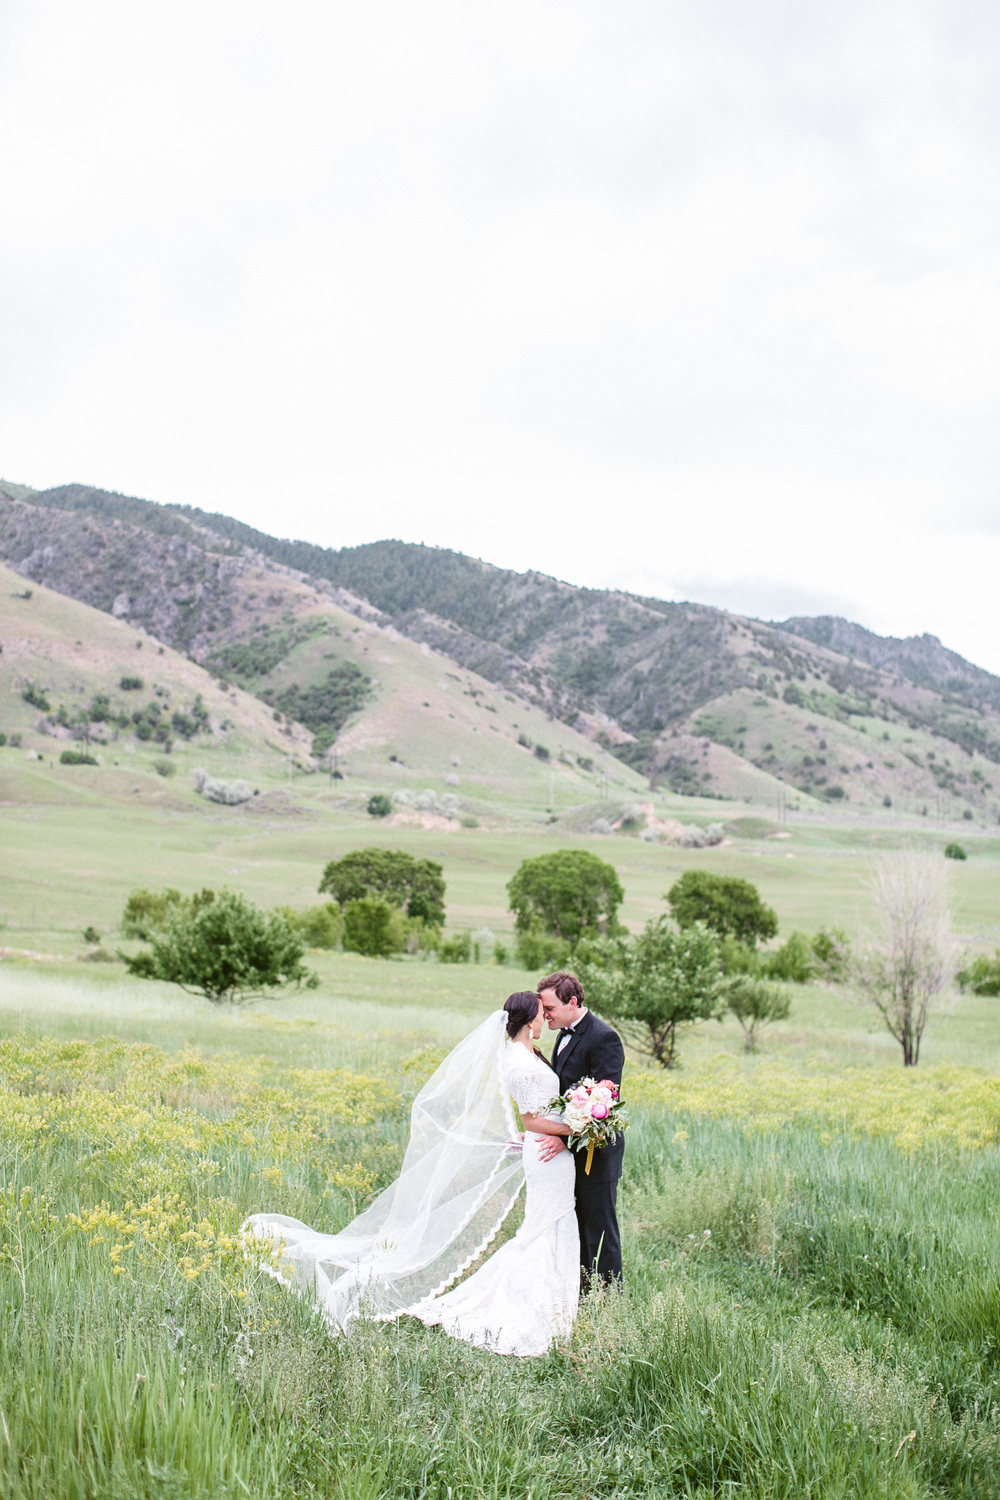 Logan Utah Real Wedding Designed and Planned by Michelle Leo Events | Jasmine Star